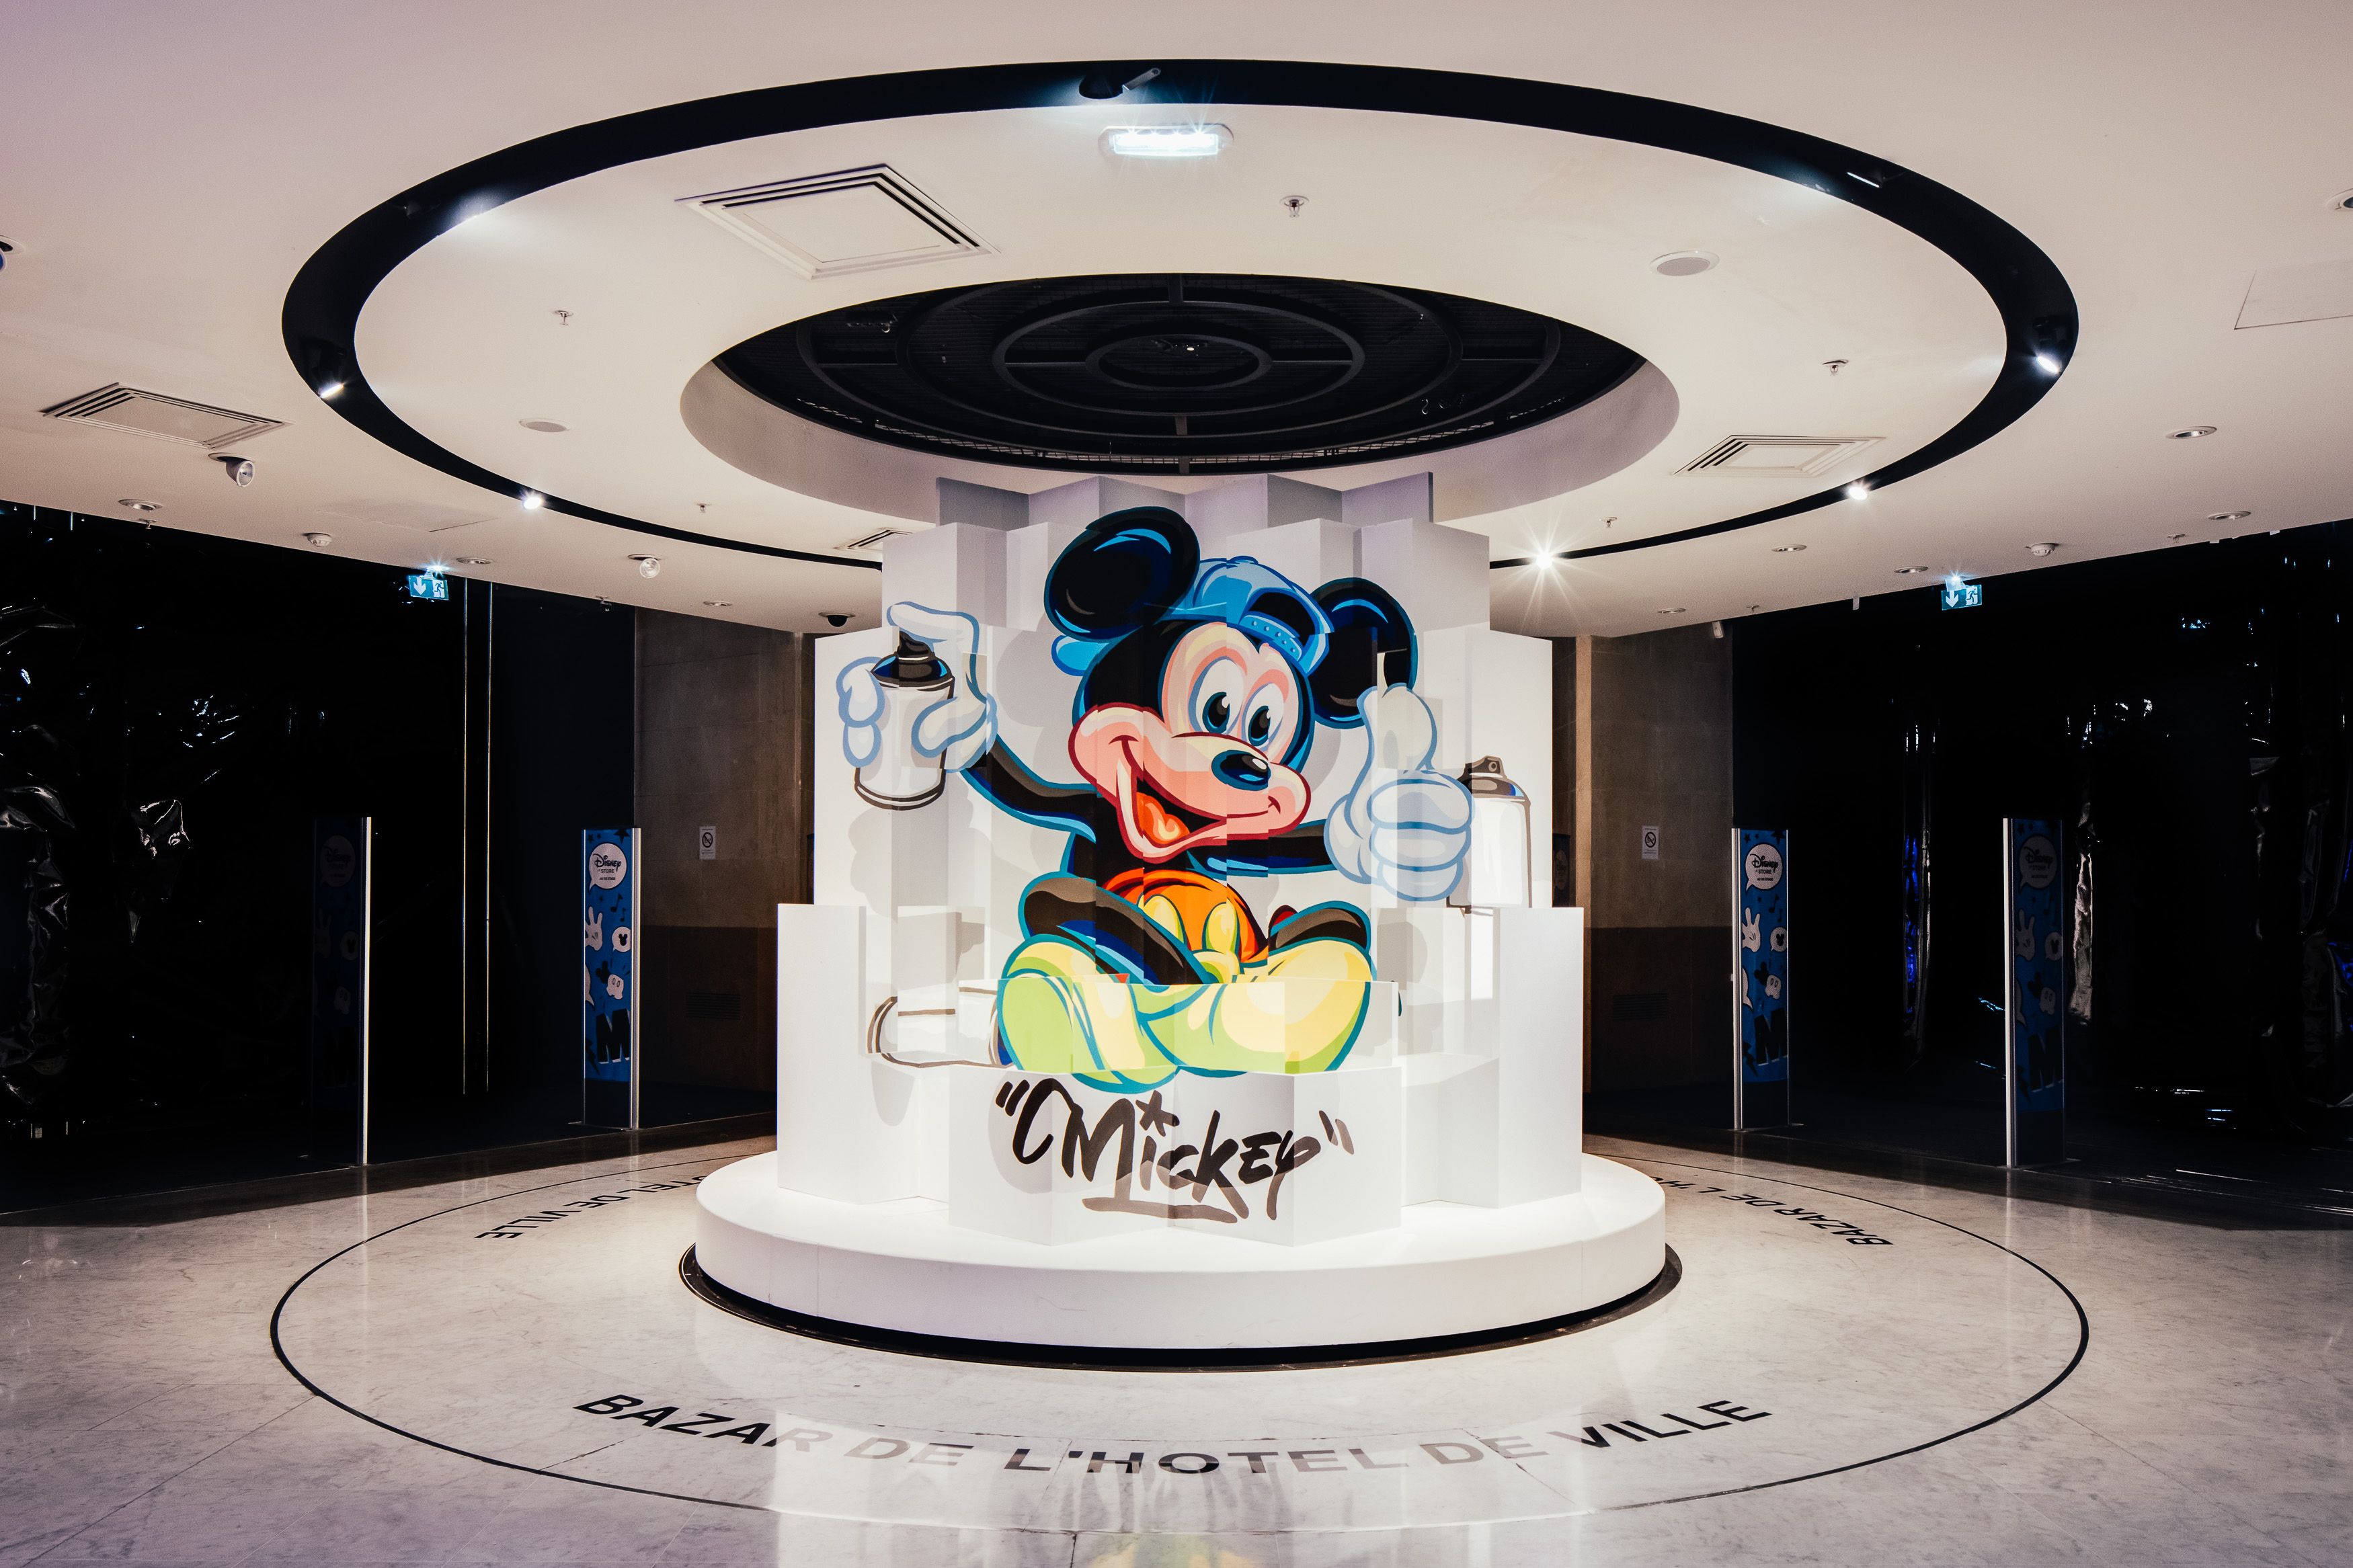 Mickey Mouse in an Impressive Anamorphic Artwork (6 pics)